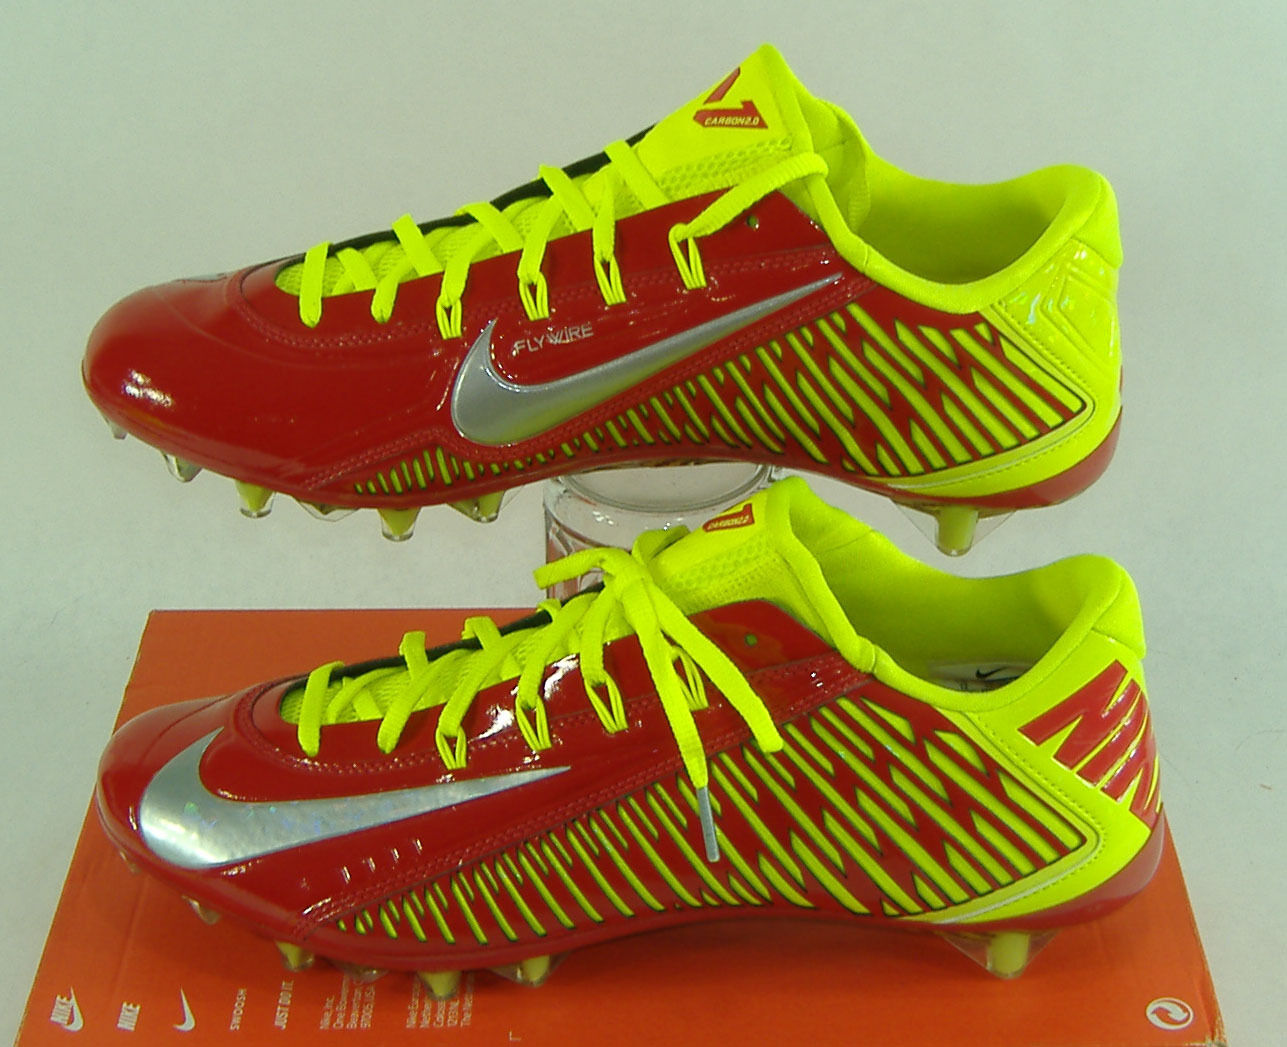 New Mens 10 NIKE Vapor Carbon ELT 2018 TD Red Volt Cleats Shoes 631425-607